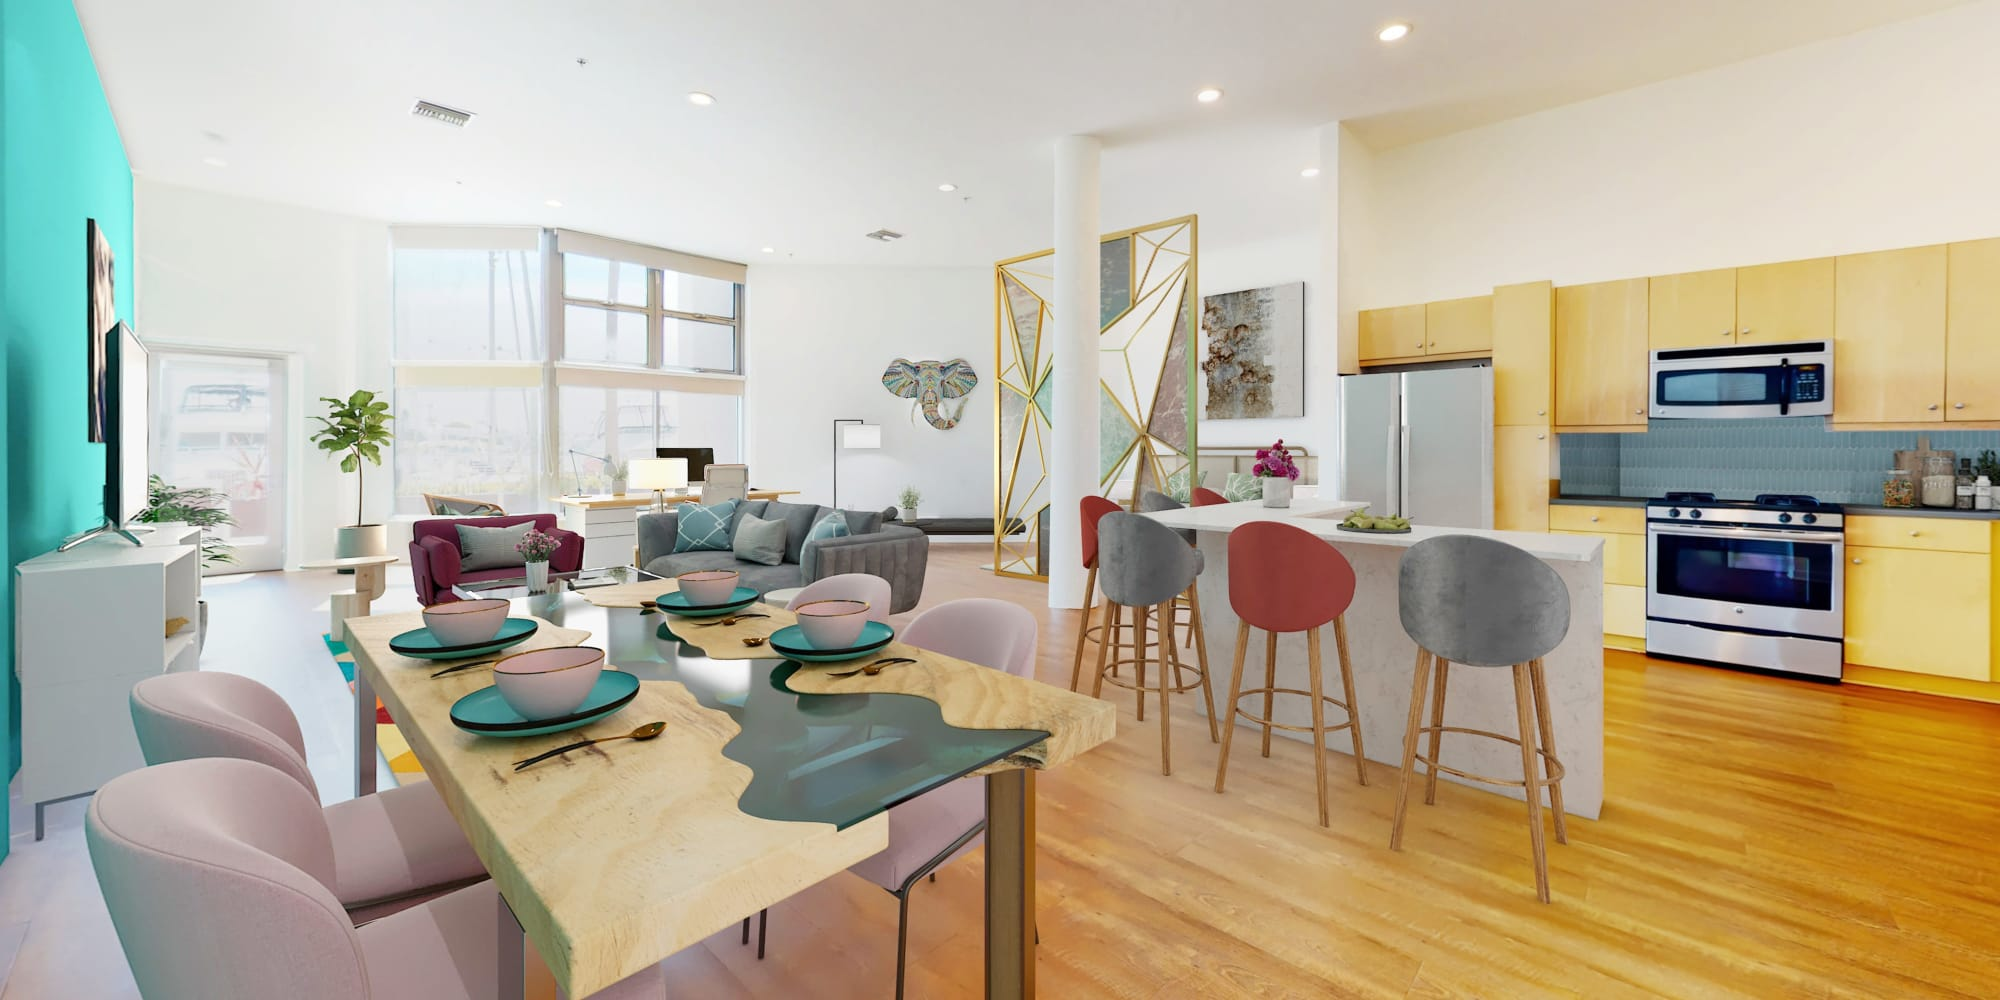 Spacious loft apartment's dining room, modern kitchen with stainless steel appliances, and hardwood floors at Esprit Marina del Rey in Marina Del Rey, California